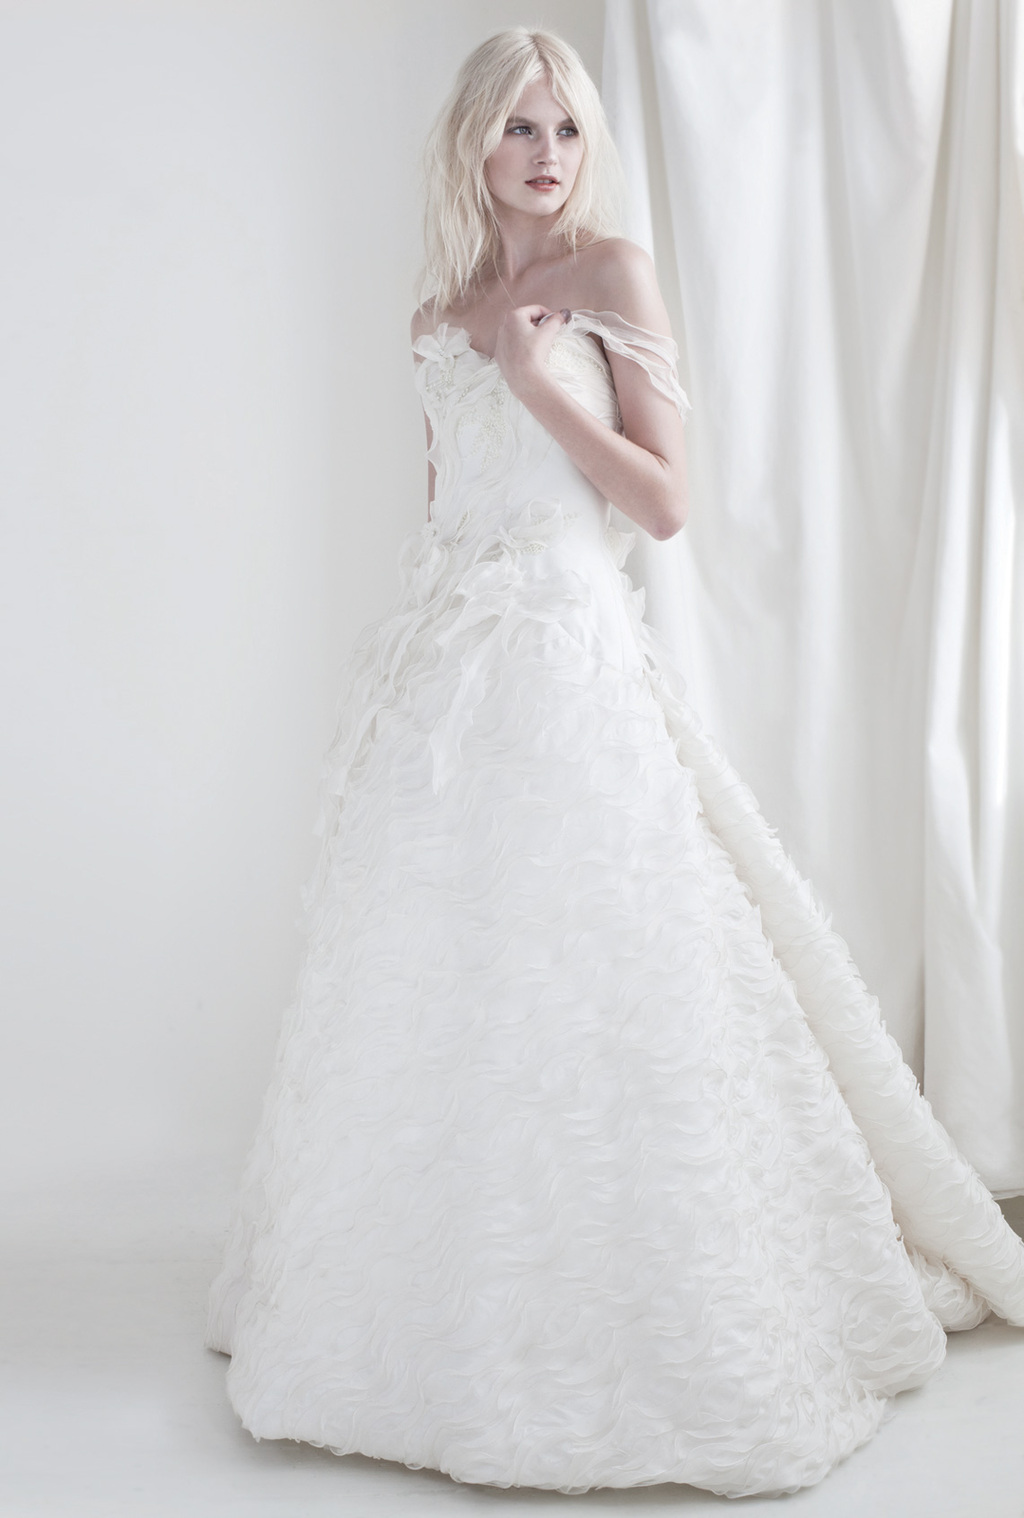 Mariana-hardwick-wedding-dress-2013-bridal-amiel-2.full